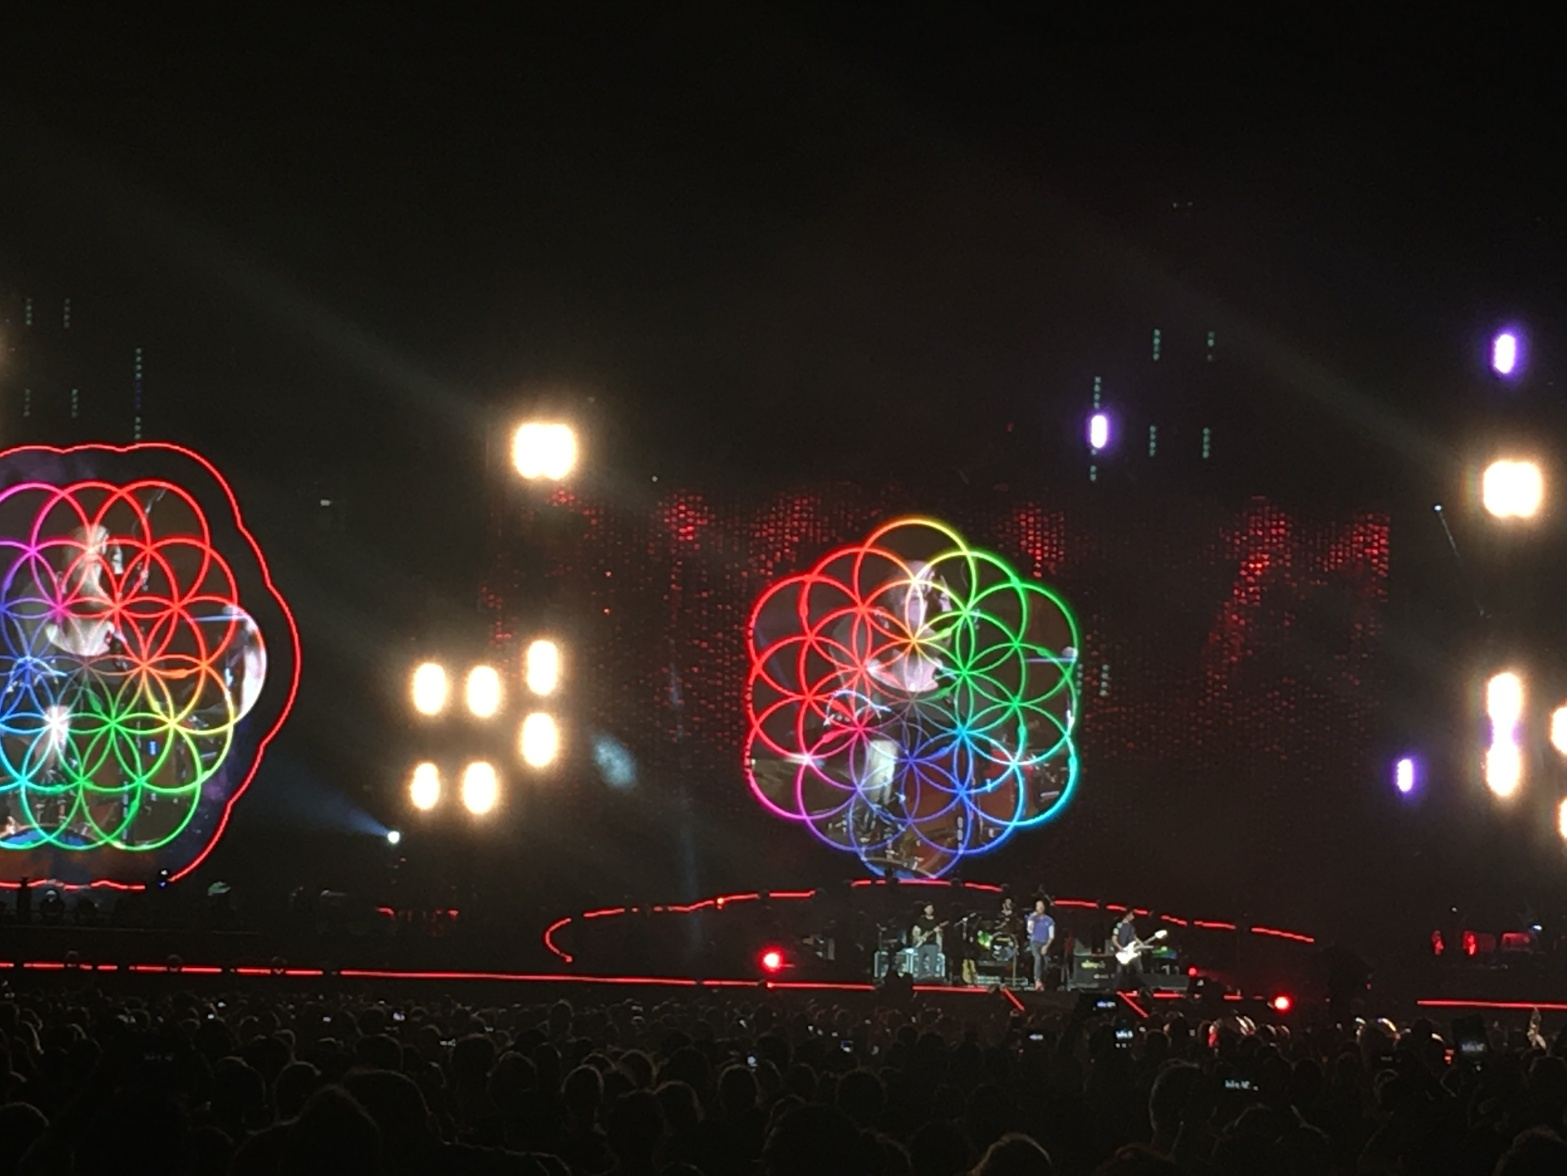 Coldplay, Chicago Soldier Field, July 23, 2016